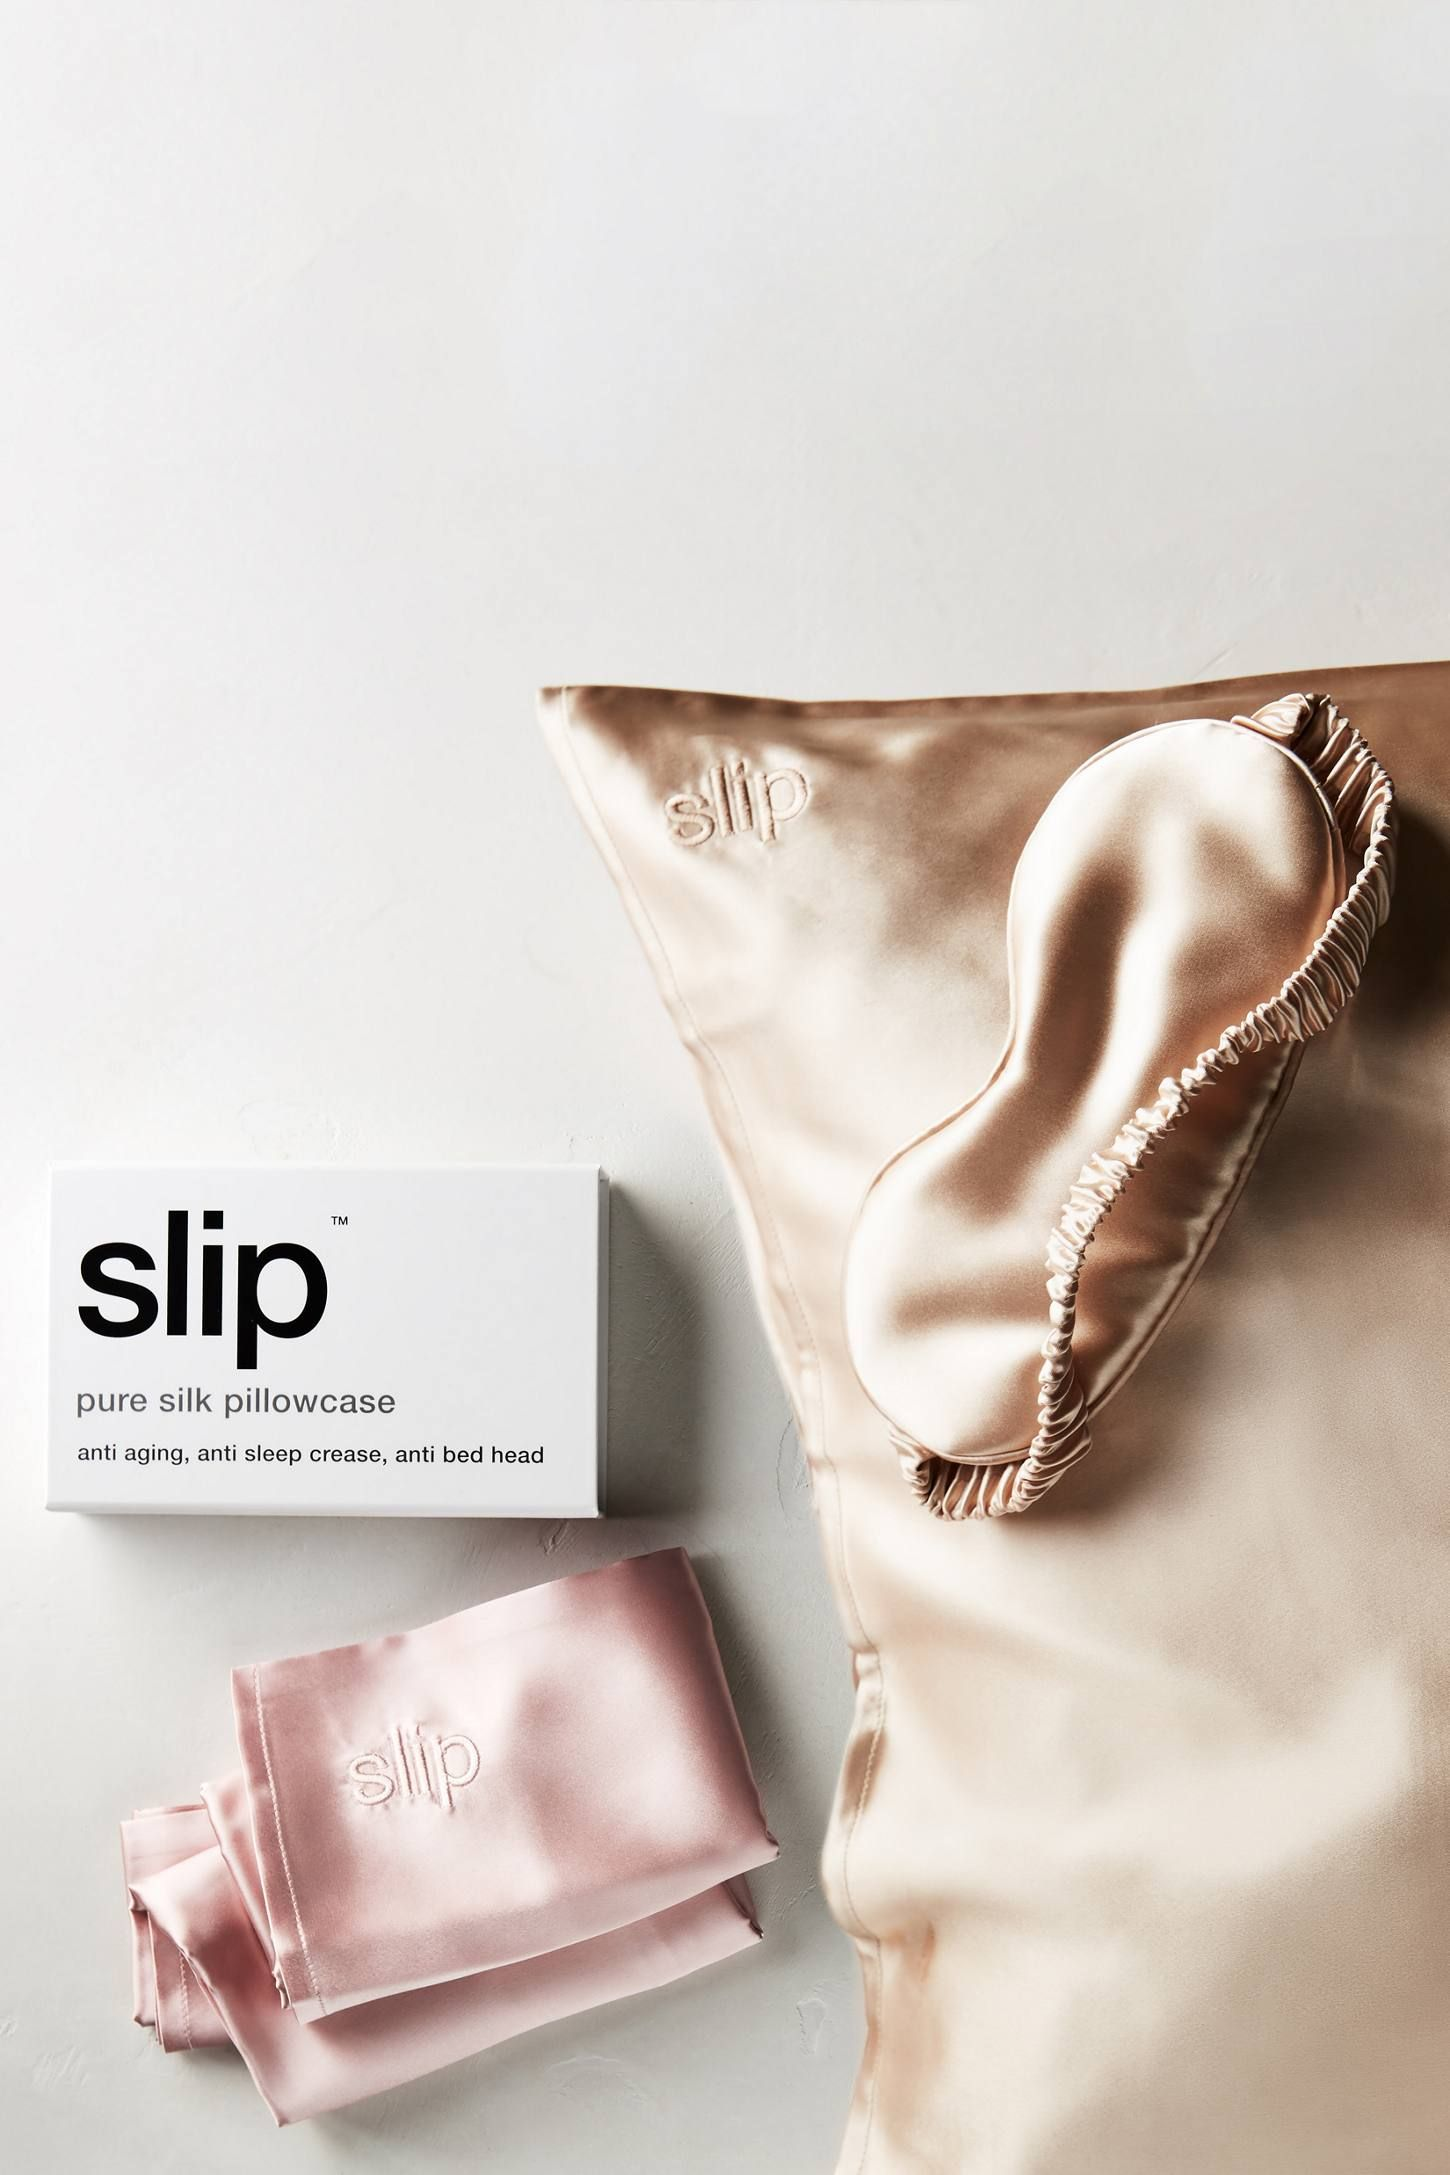 Slip Pillowcase Review Cool Slip Silk Sleep Mask  Anthropologie Masking And Silk Inspiration Design